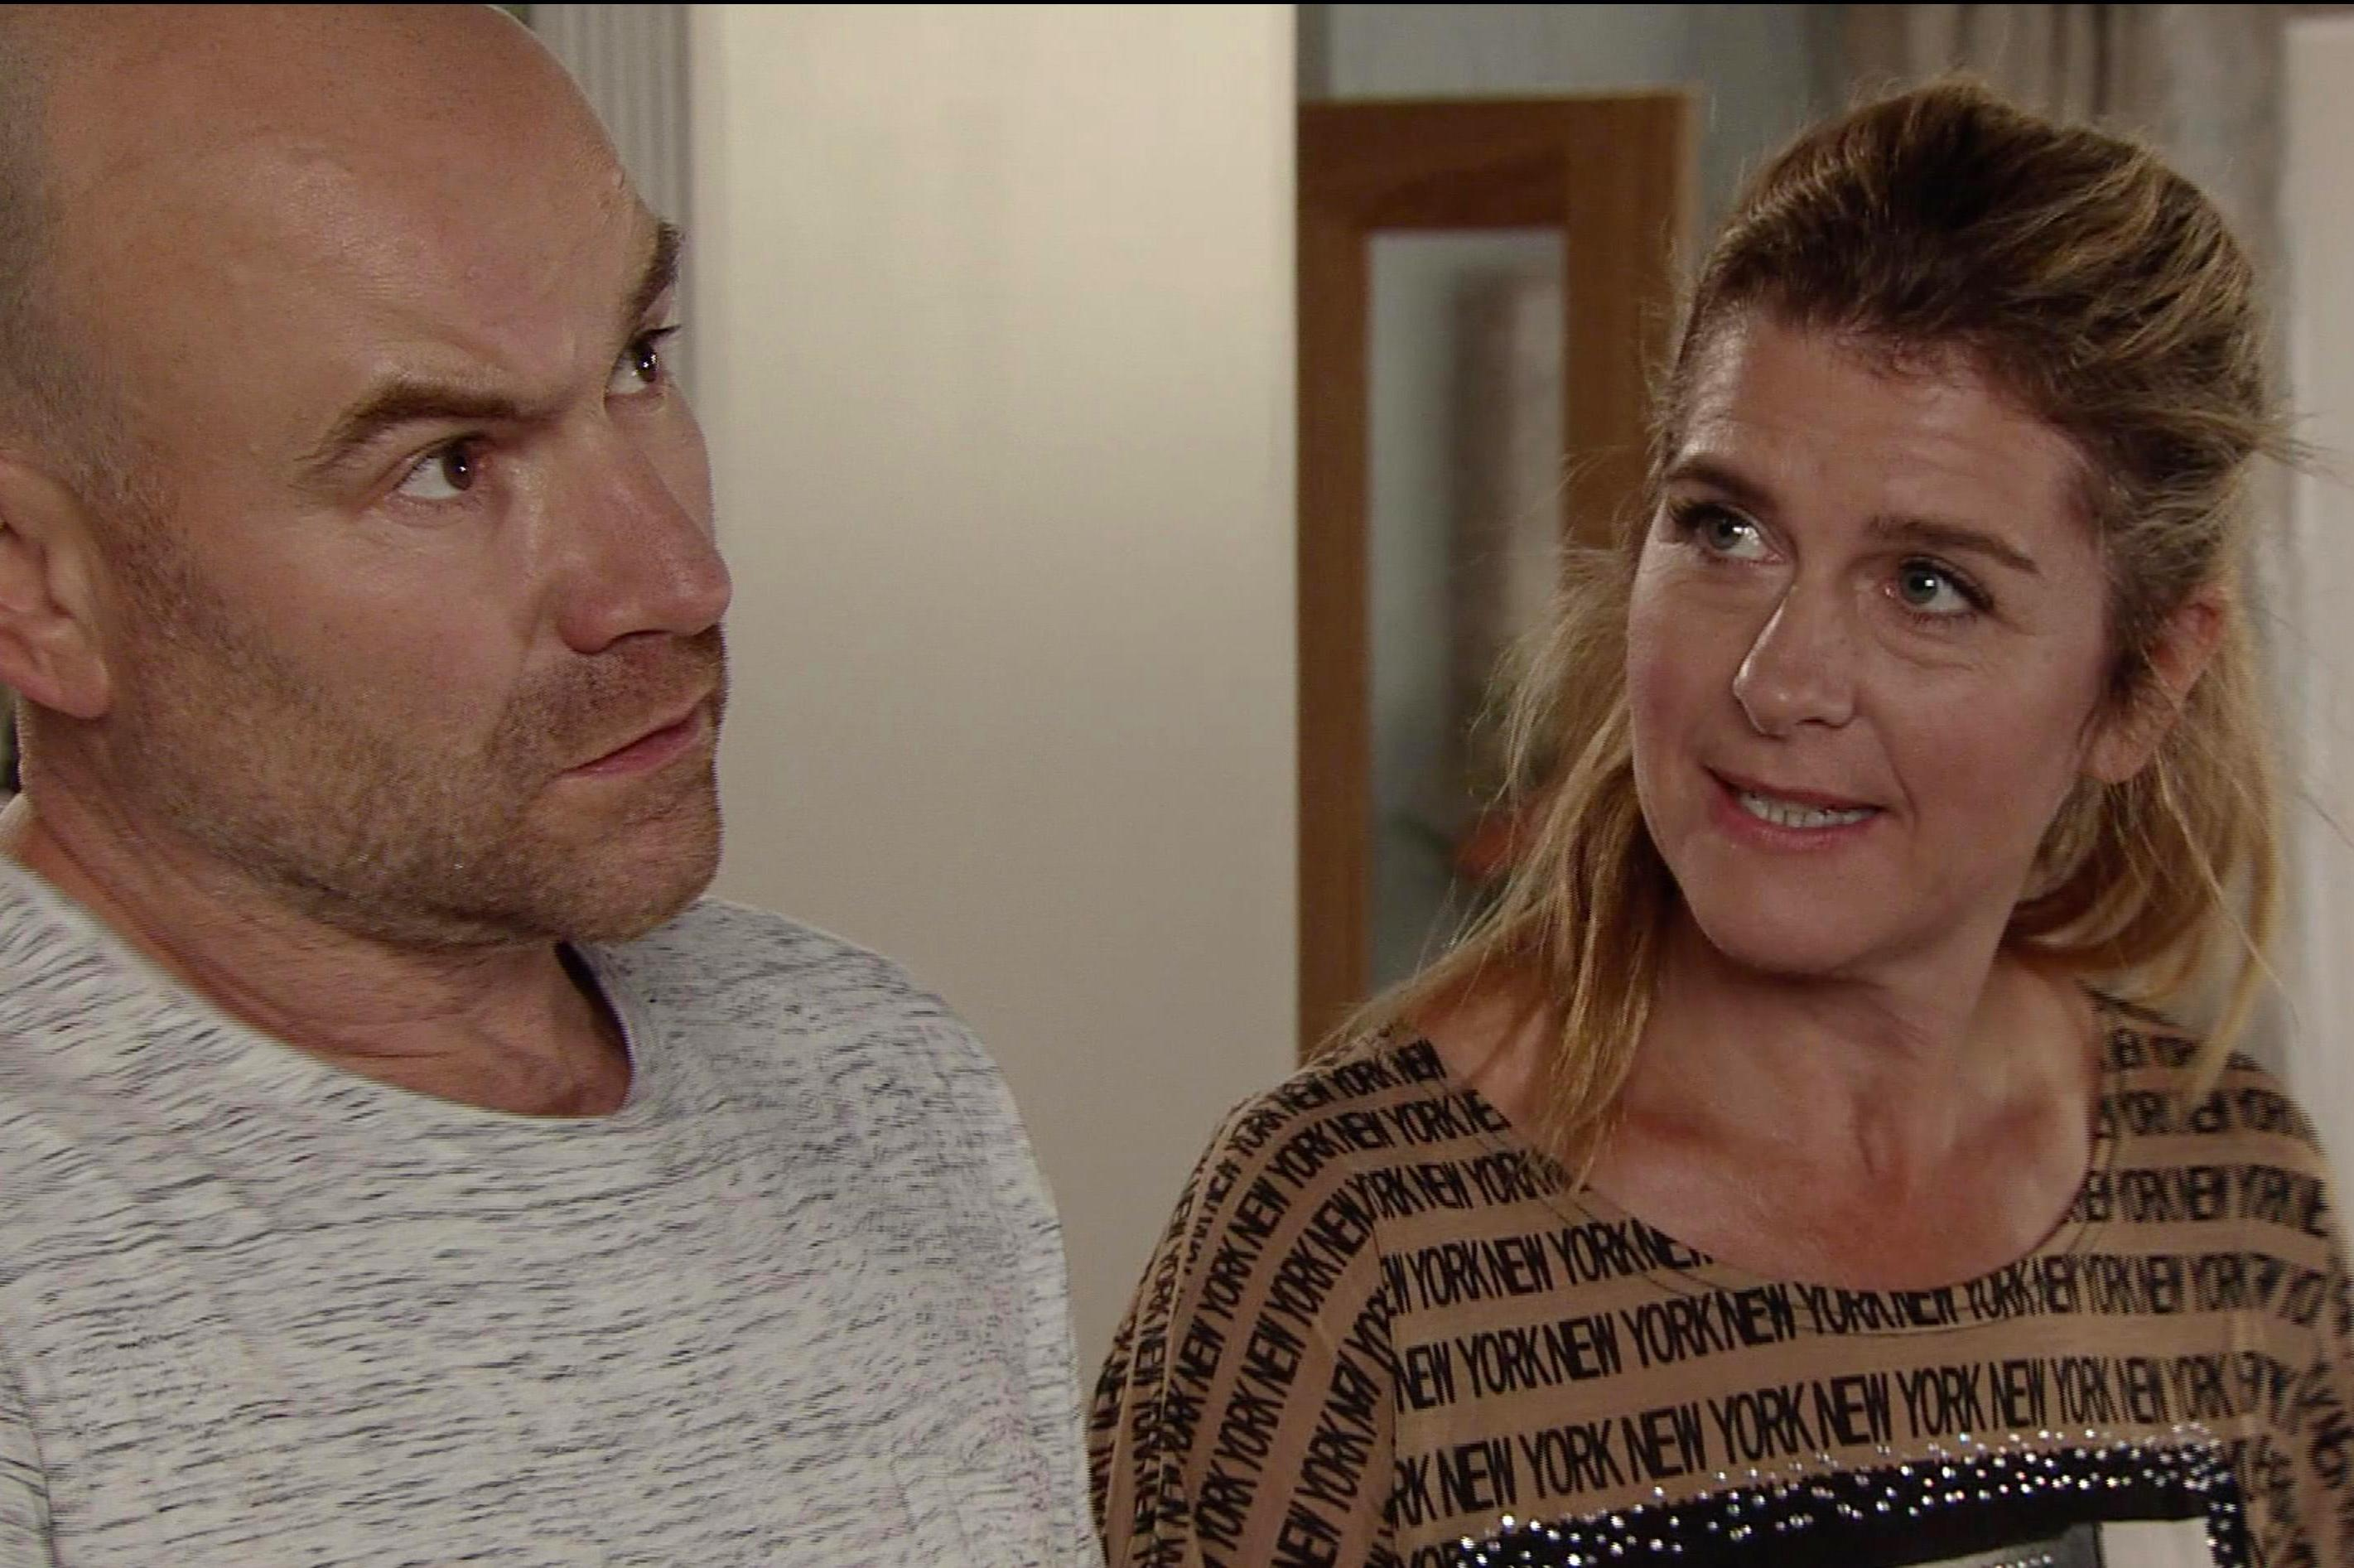 Coronation Street spoilers: Gina Seddon takes down Duncan Radfield to make amends with Sally Metcalfe after sleeping with her husband Tim